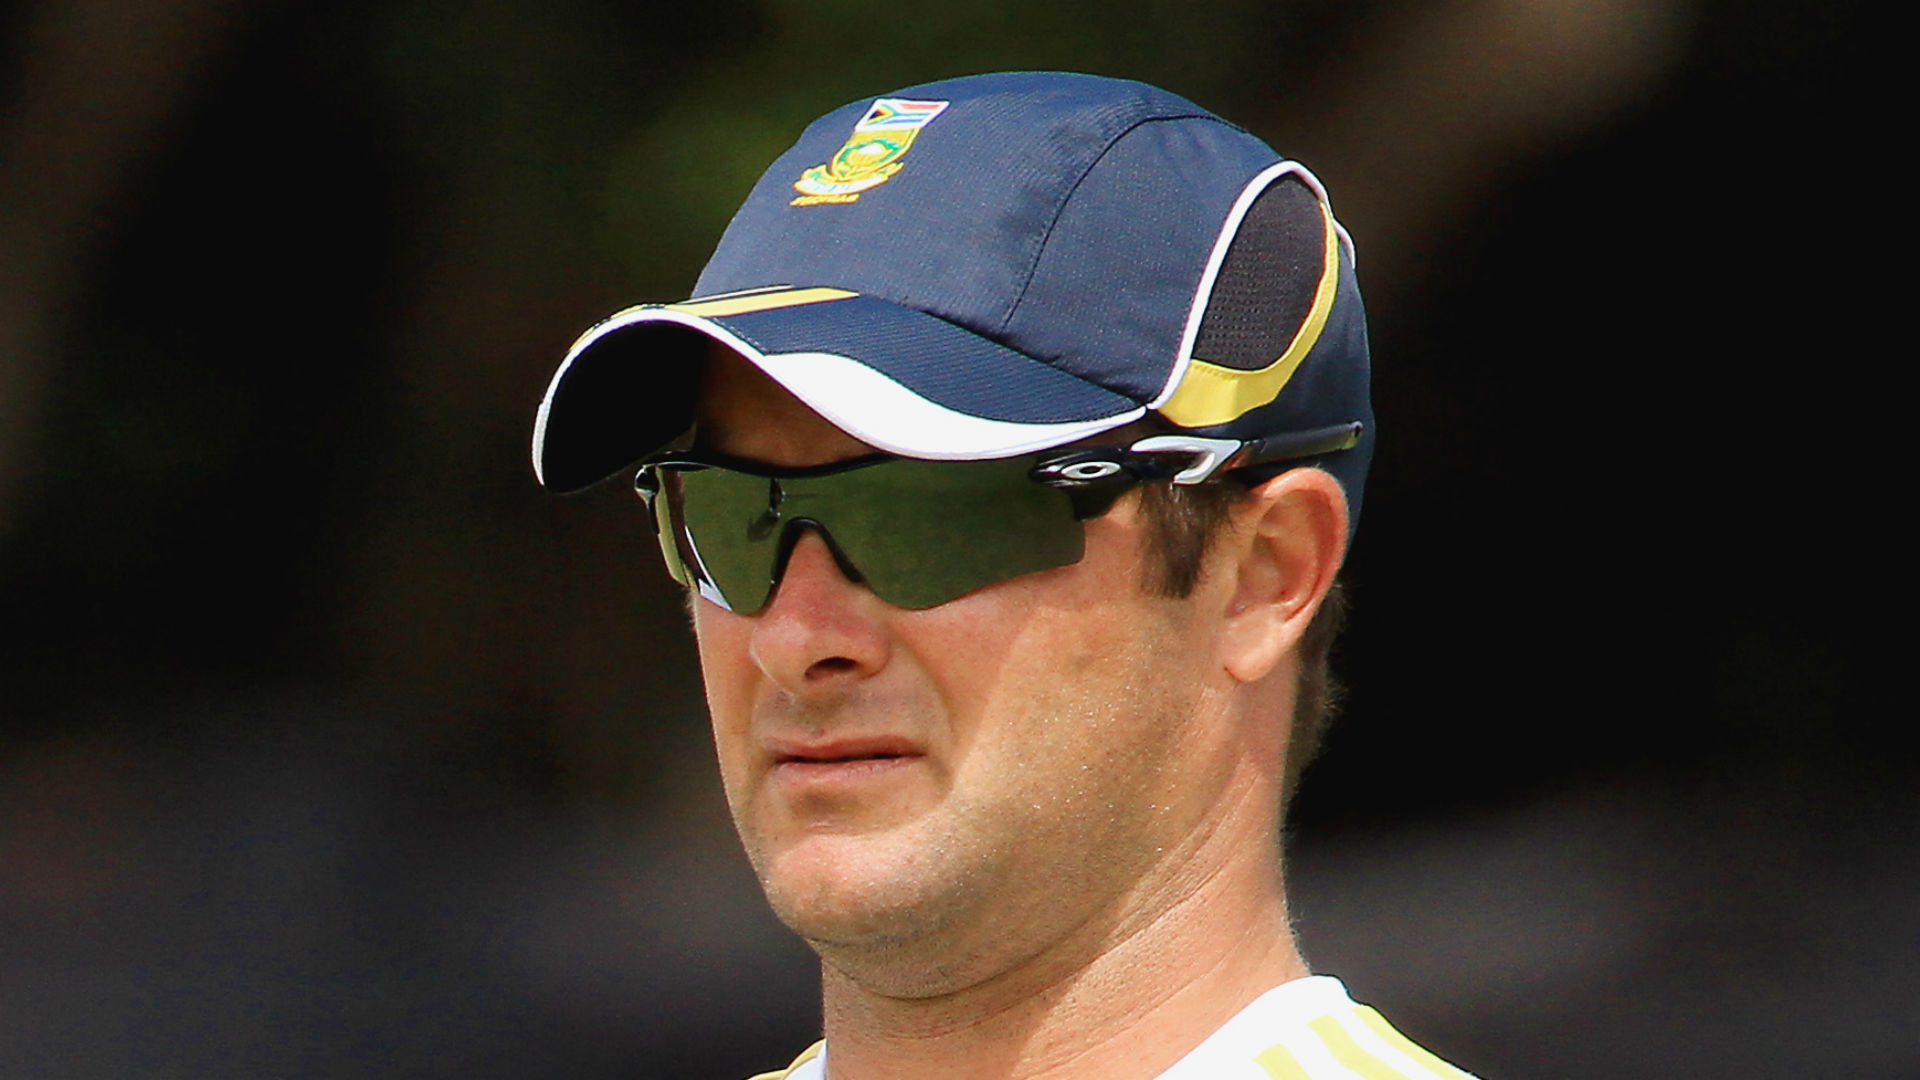 BREAKING NEWS: Boucher named South Africa head coach